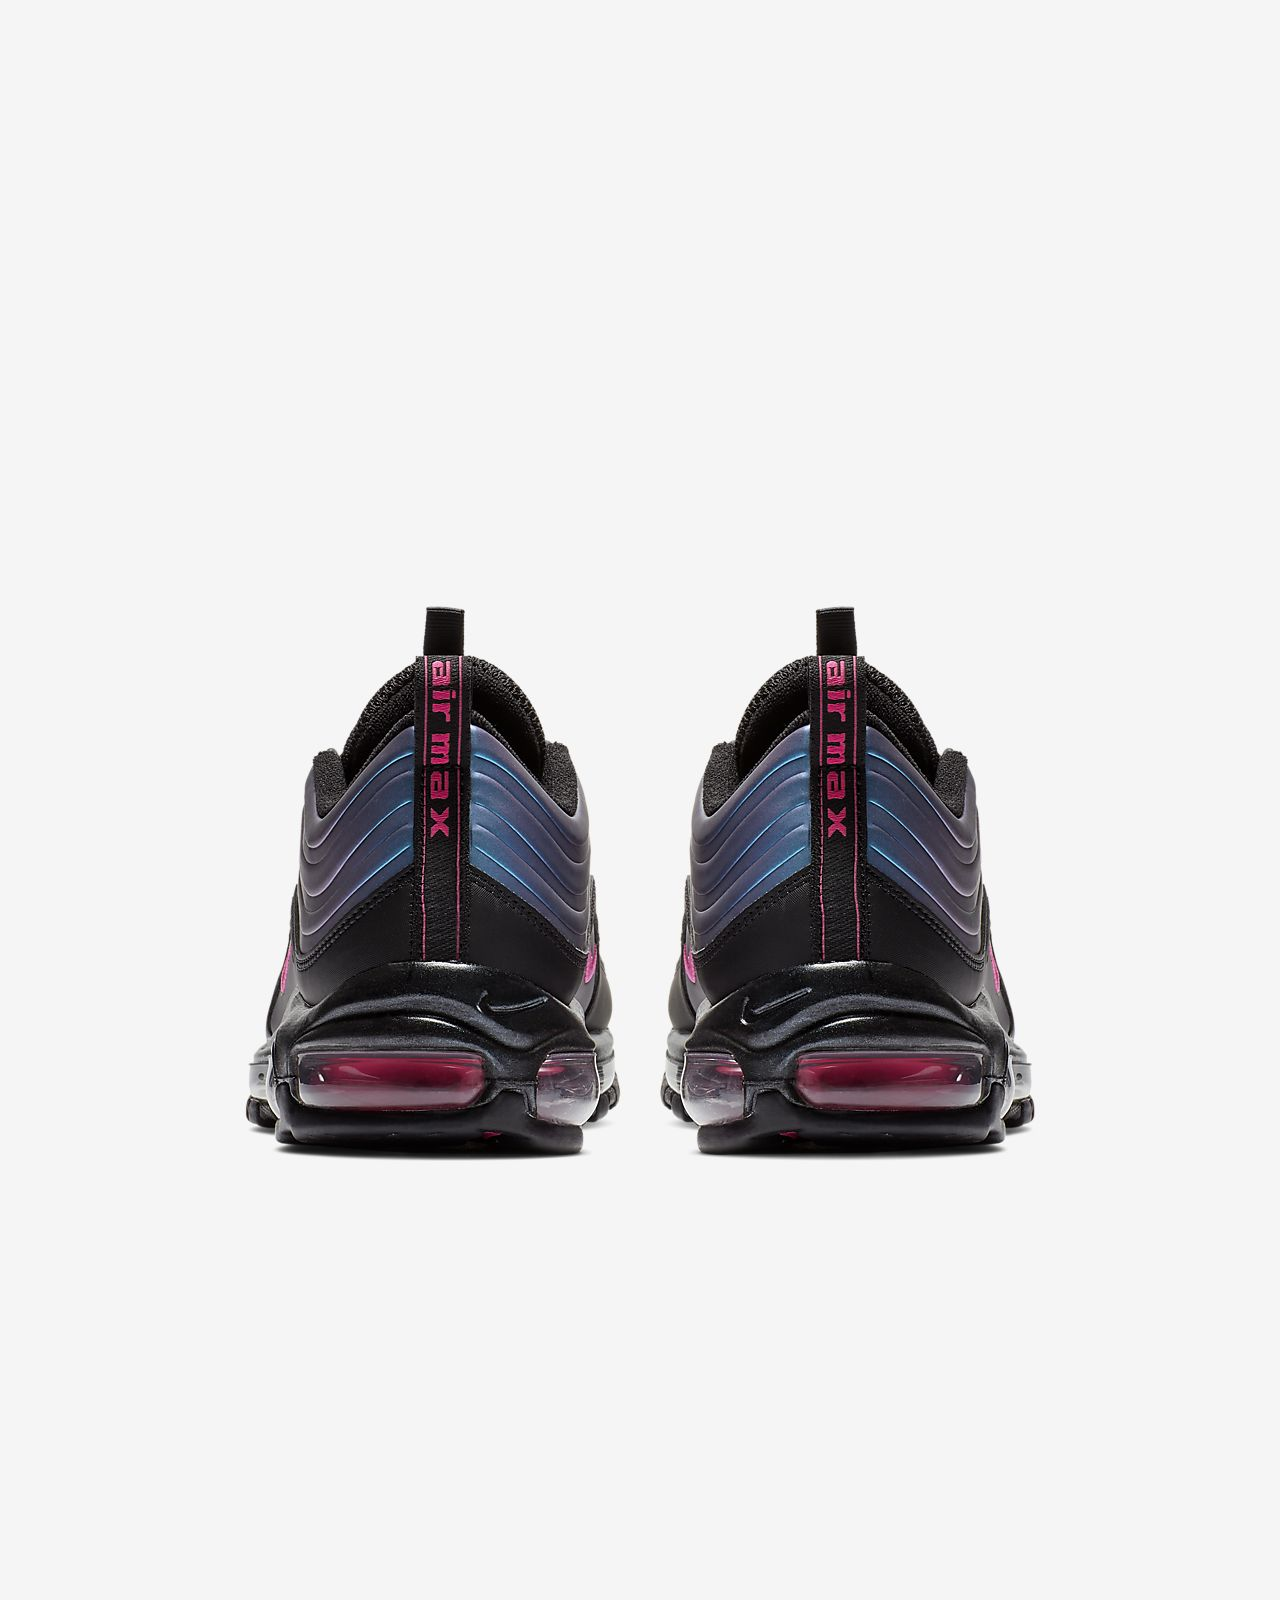 Amazing Deals on Men's Nike Air Max 97 Lx Sneaker, Size 14 M